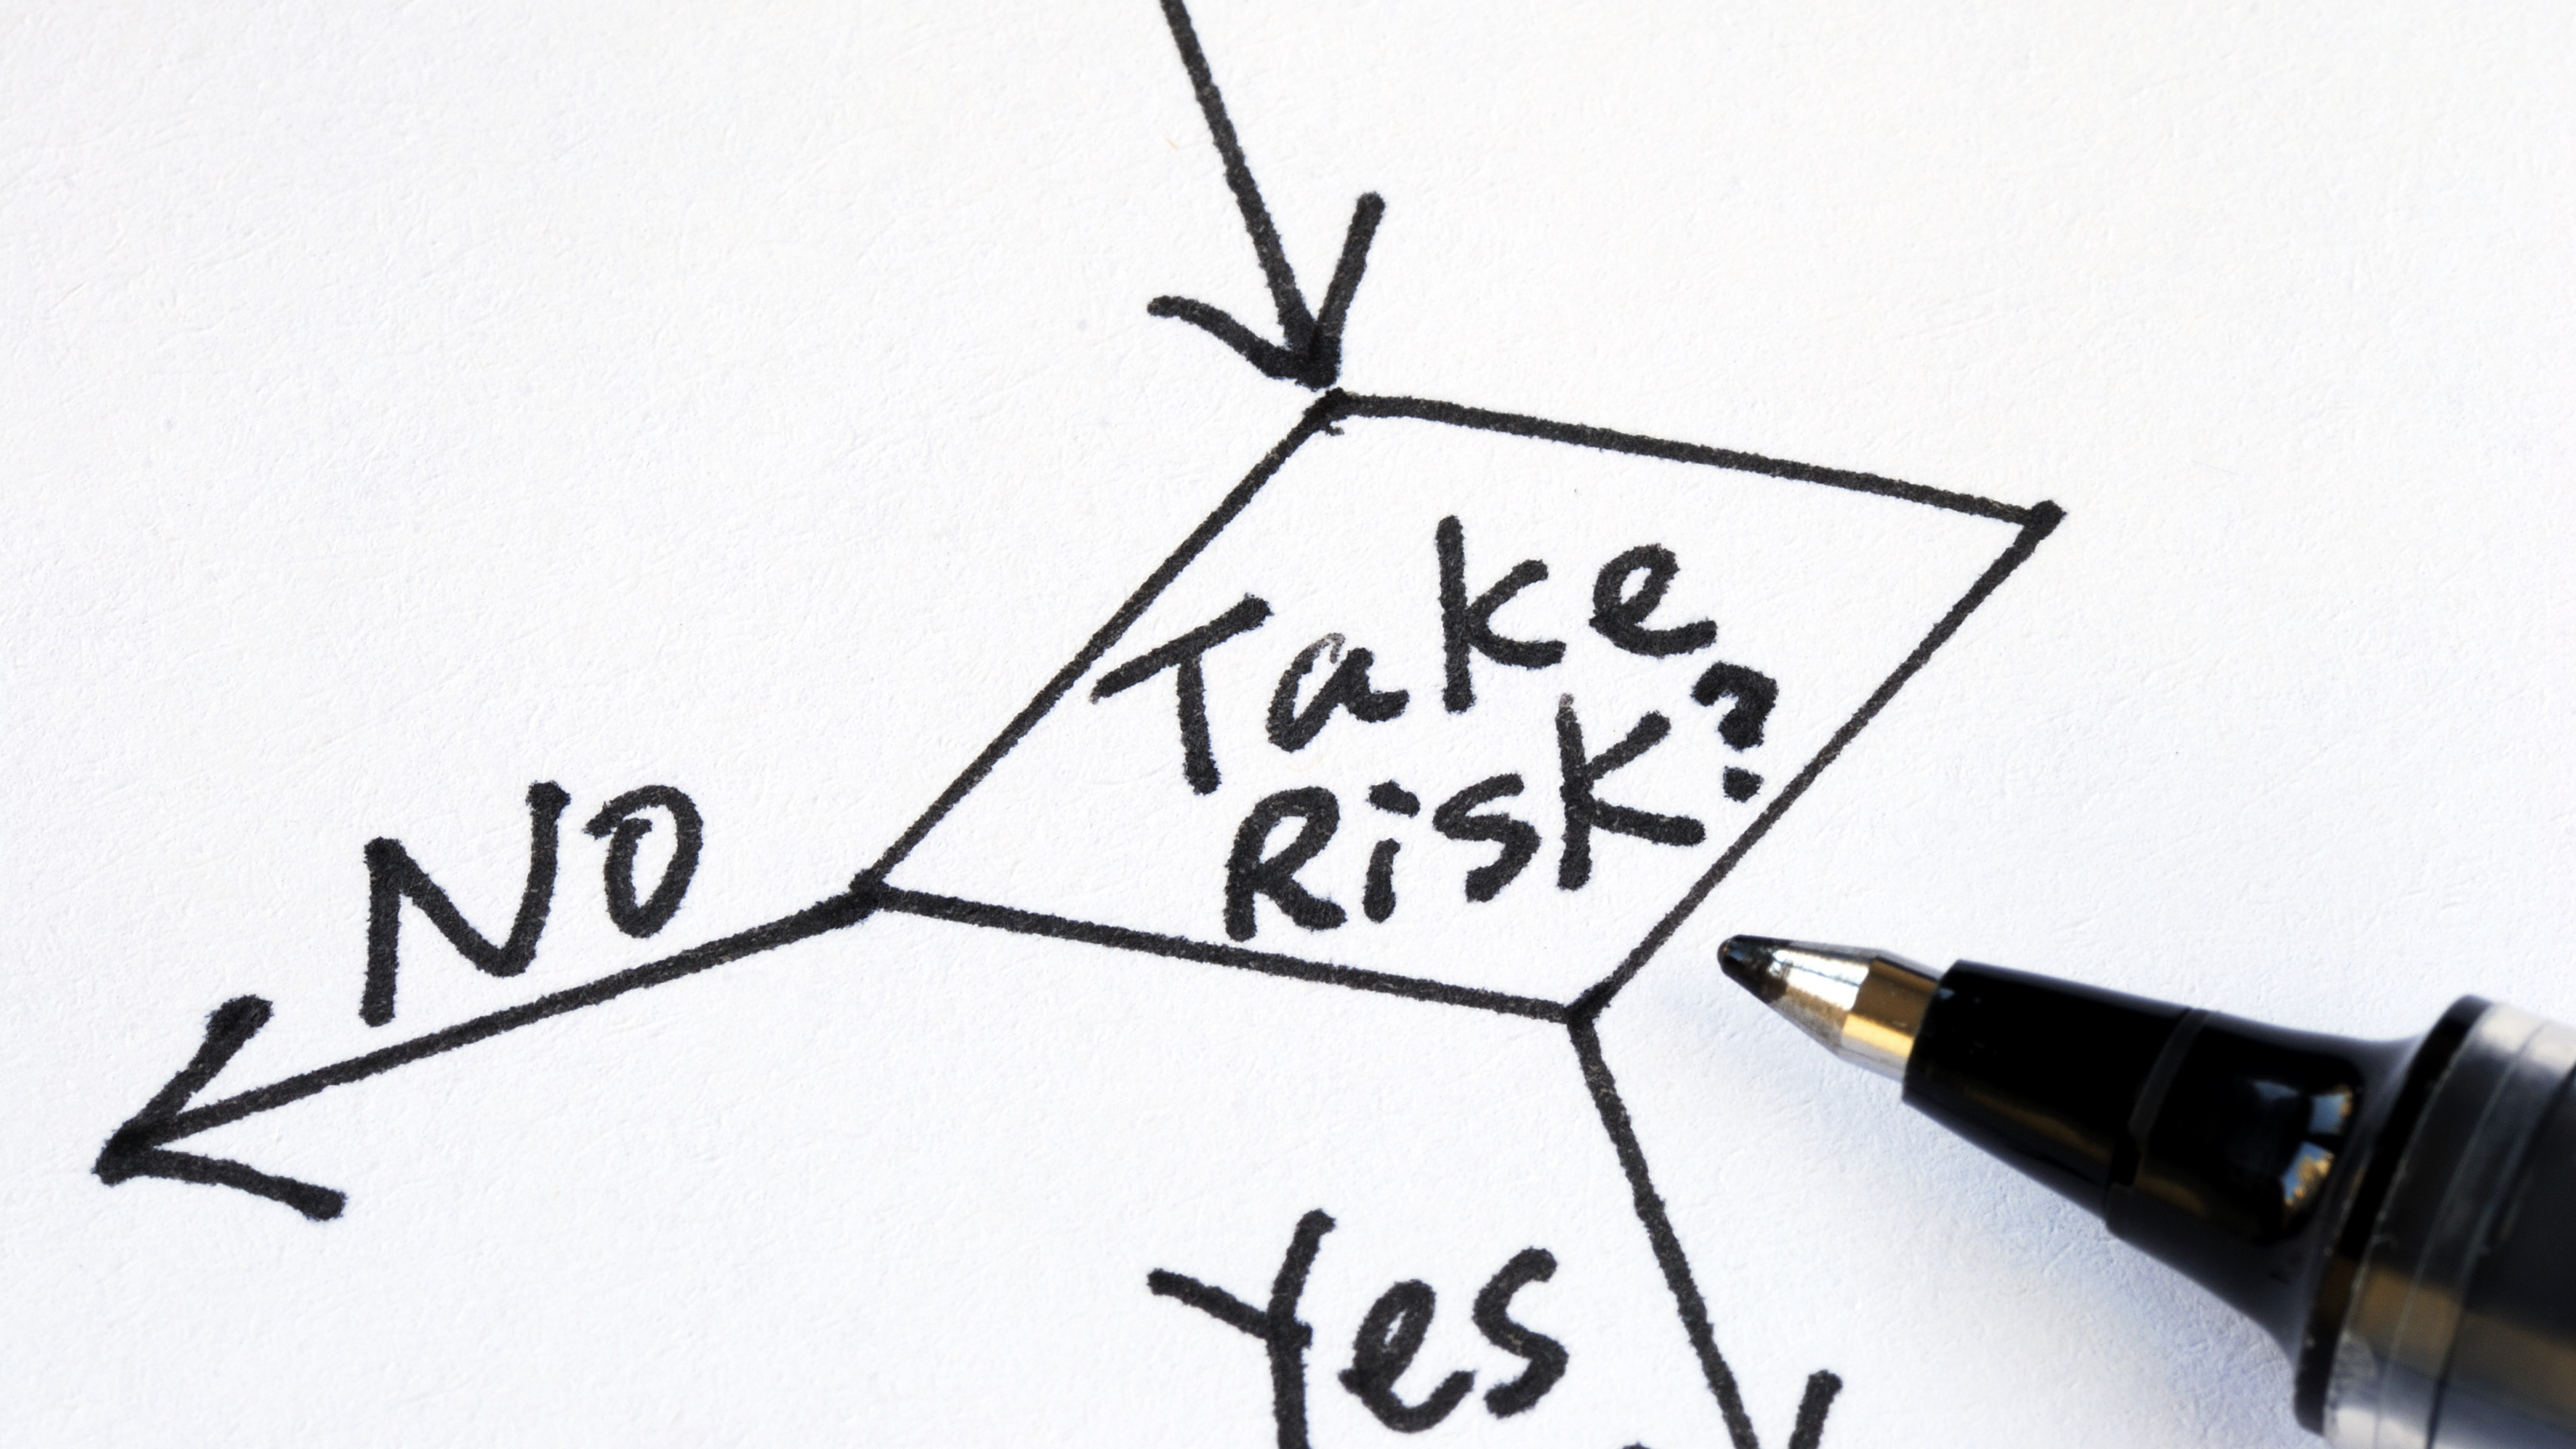 Determine whether to take the risk or not